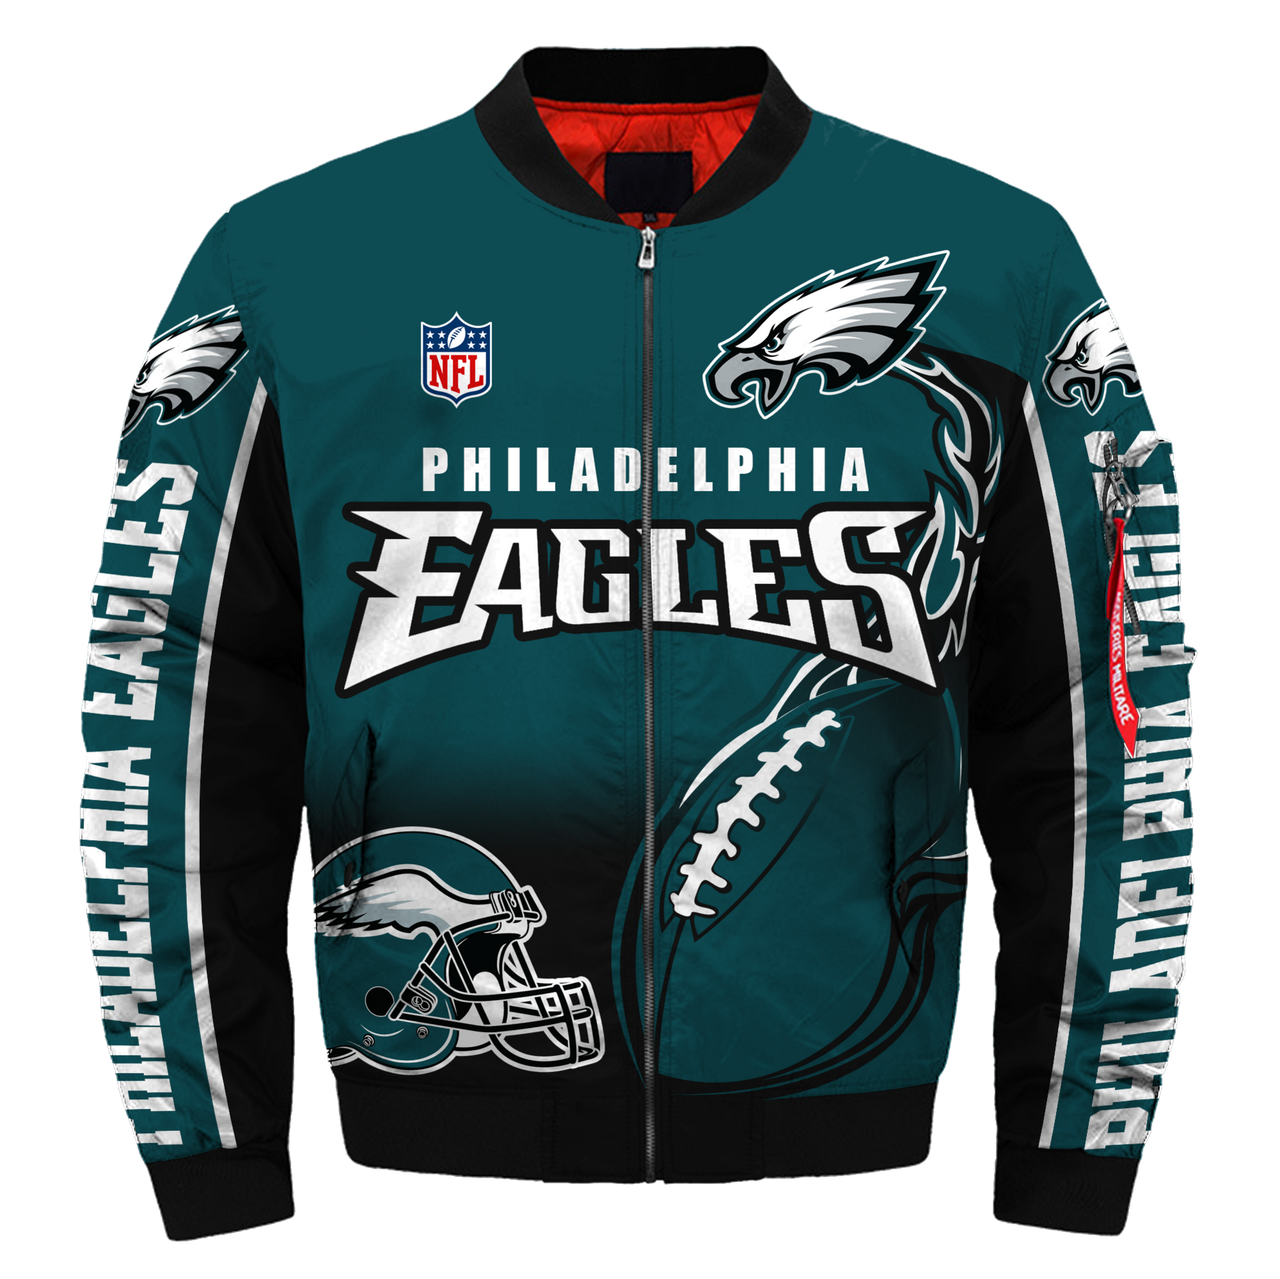 separation shoes 7840b ae60a **(OFFICIAL-NEW-N.F.L.PHILADELPHIA-EAGLES-JACKETS/IN-OFFICIAL-EAGLES-TEAM-COLORS  & OFFICIAL-CLASSIC-EAGLES-LOGOS-BOMBER/FLIGHT-JACKET & ...